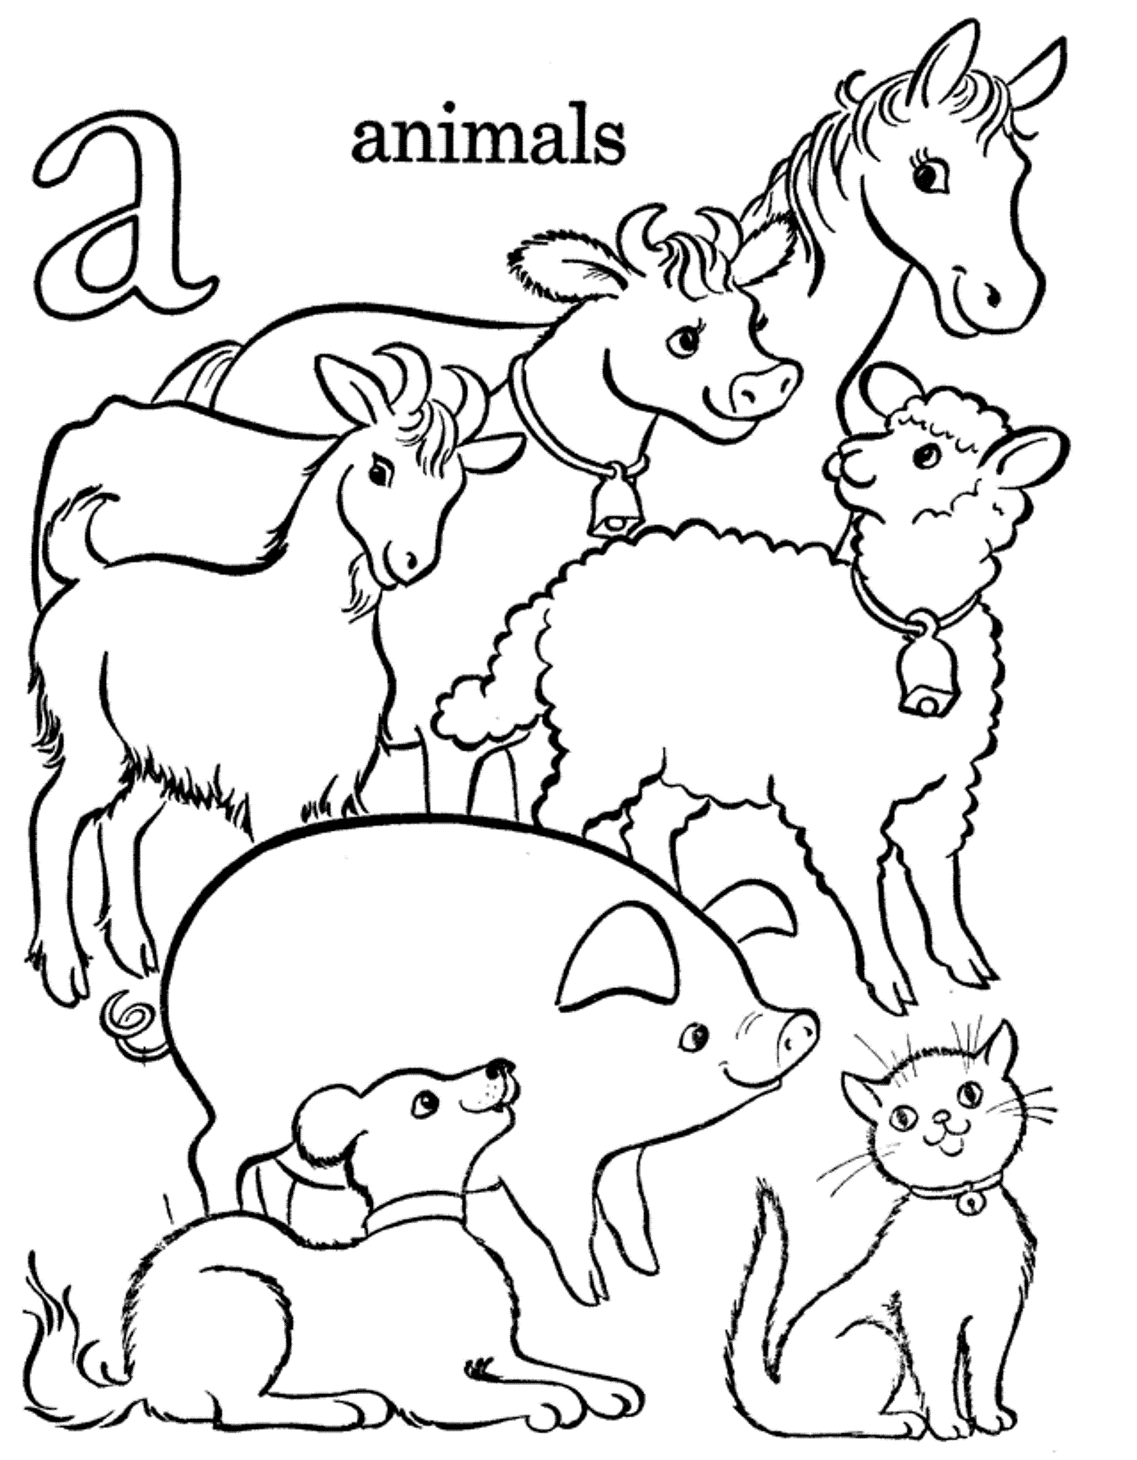 old mcdonald coloring pages - photo#21